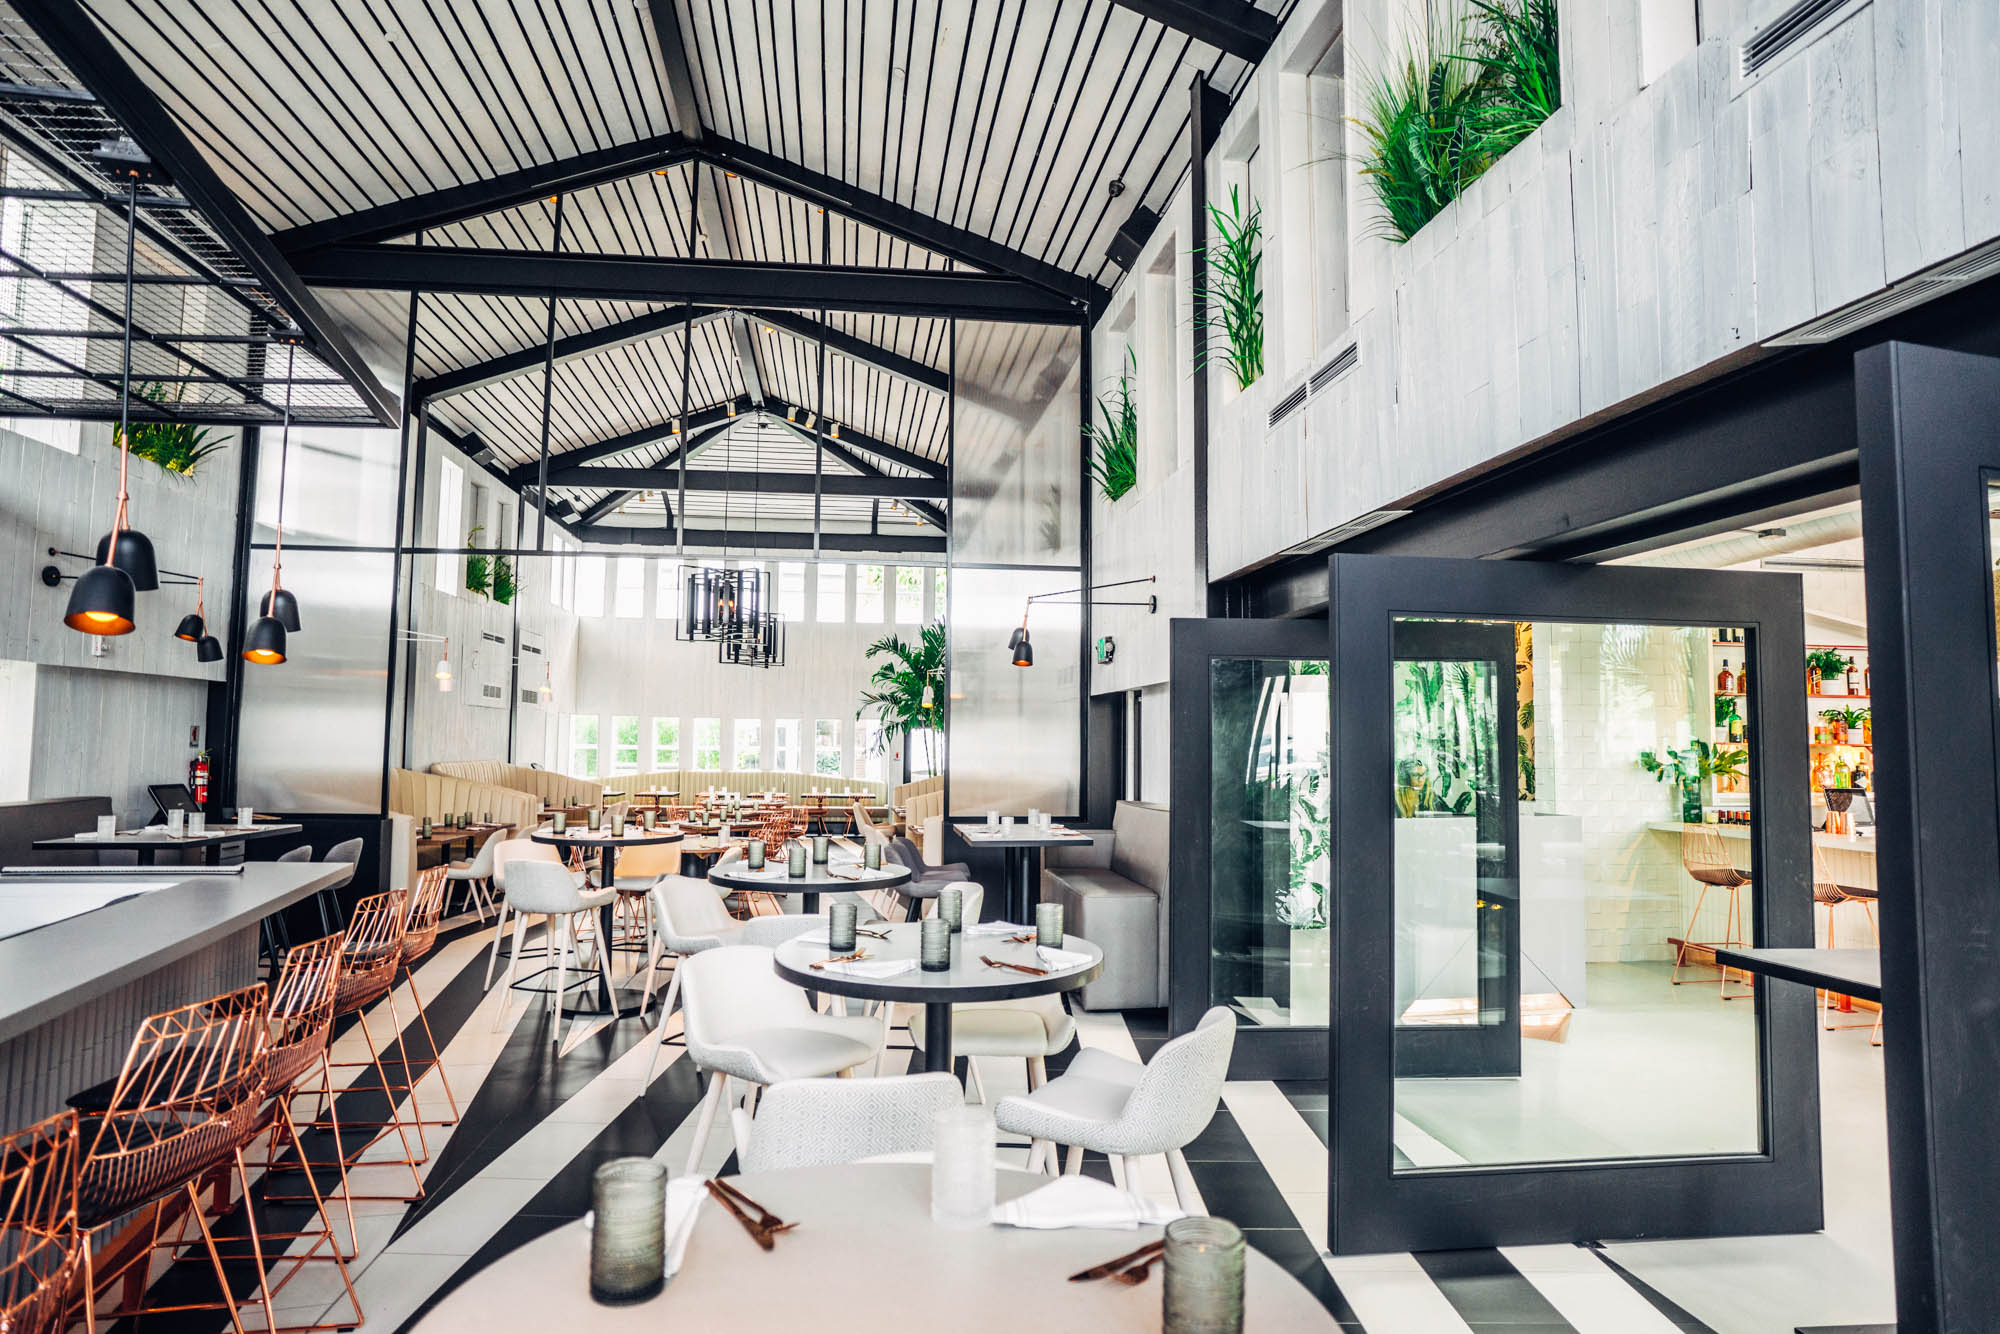 PLANTA, a vegetarian restaurant with locations in Toronto and South Beach, provides a feast for the palate and the eye. Our team loves the open, airy space and the bold geometric lines. Gift cards are available online for the Toronto location by clicking here. Stop by the South Beach location to purchase a gift card. If you're looking for a festive and cruelty-free way to ring in the New Year, Planta is accepting reservations for a special New Year's Eve seating.